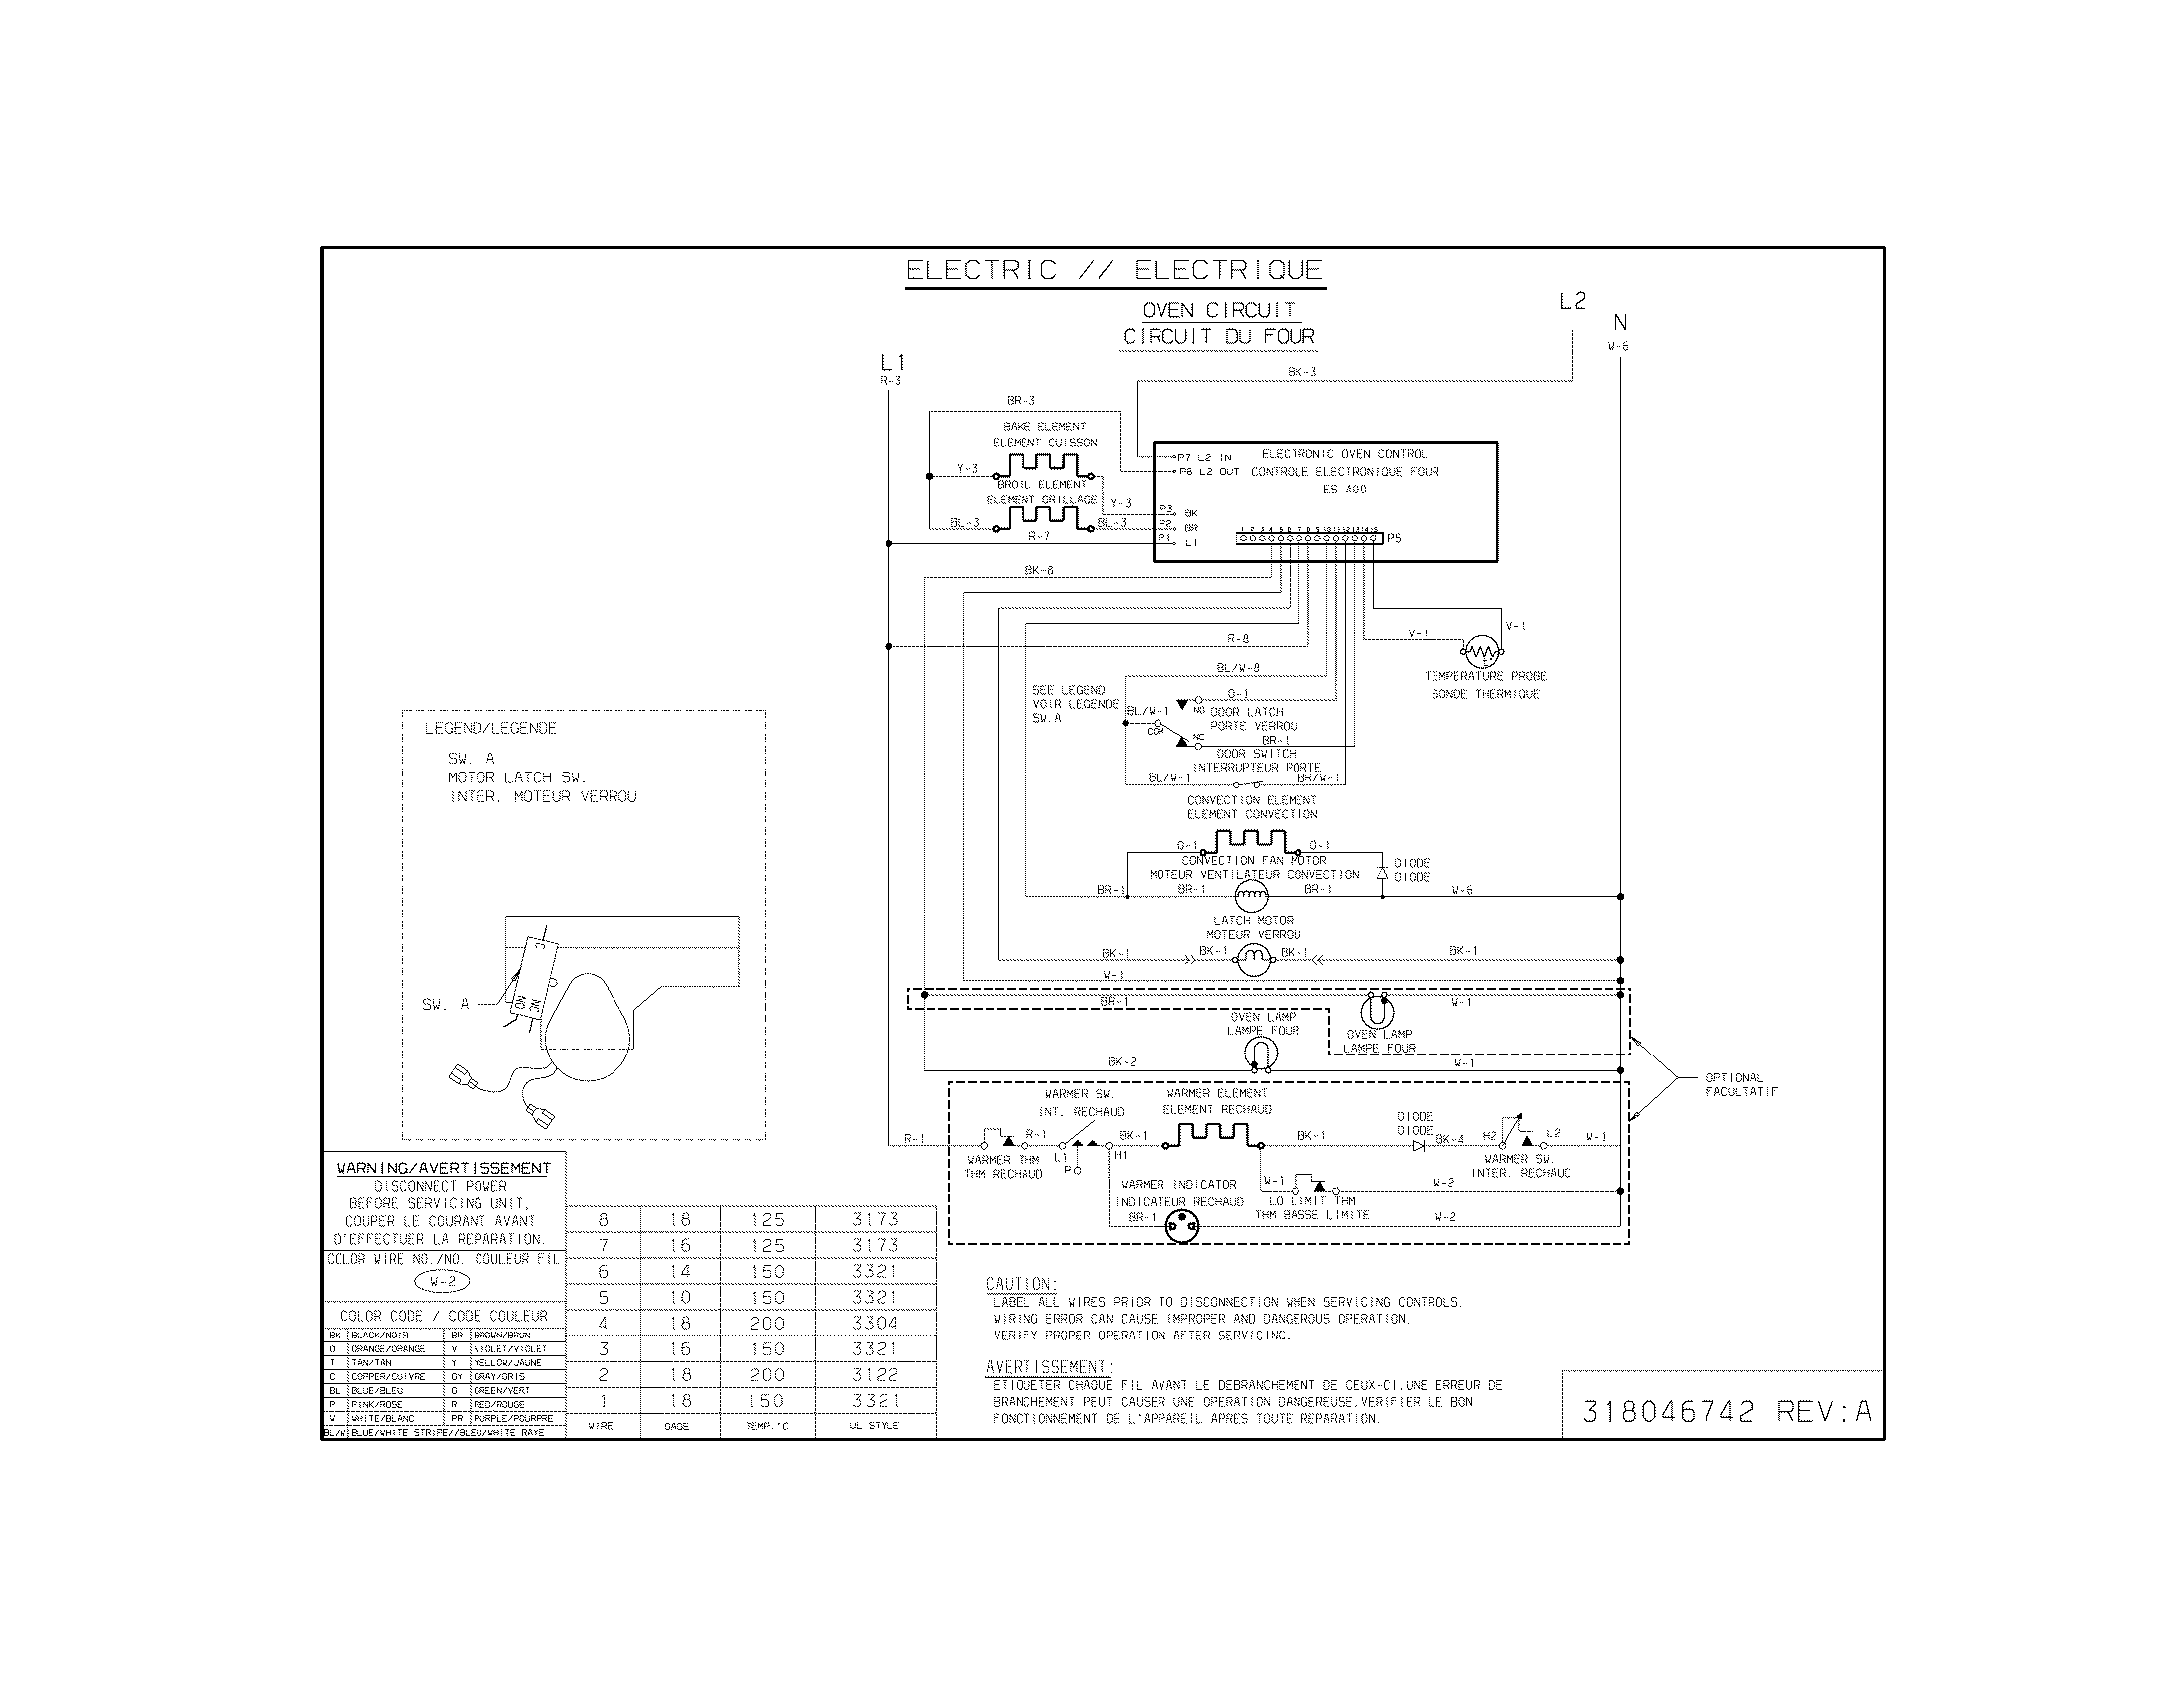 wiring diagram parts electrolux pglef385cb1 electric range timer stove clocks and electrolux wiring diagram at creativeand.co